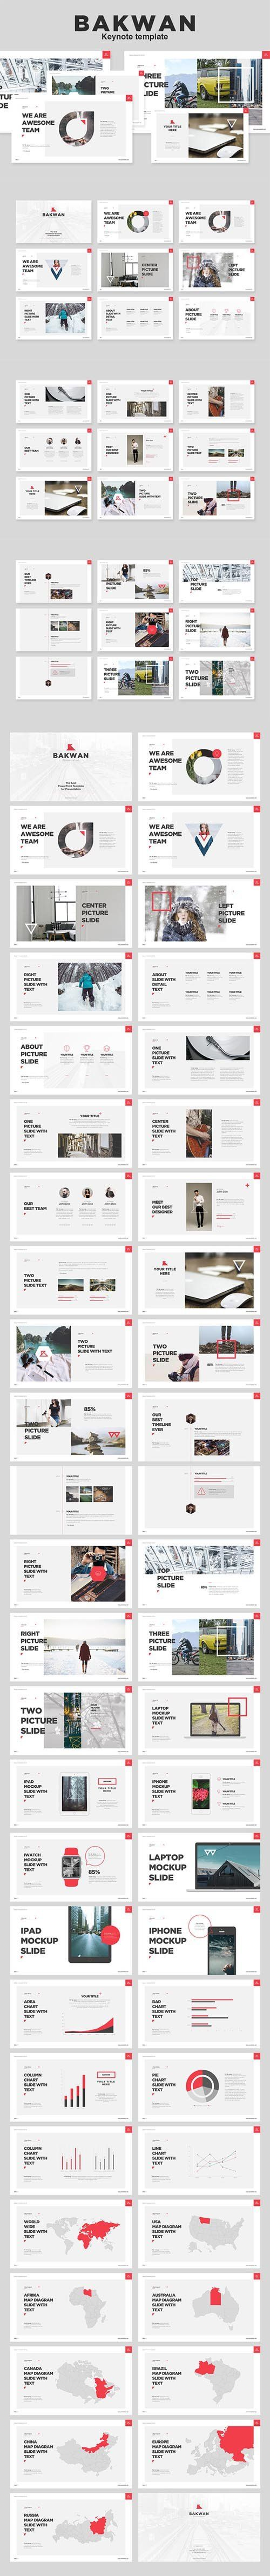 Bakwan Keynote Template 655688                                                                                                                                                                                 More